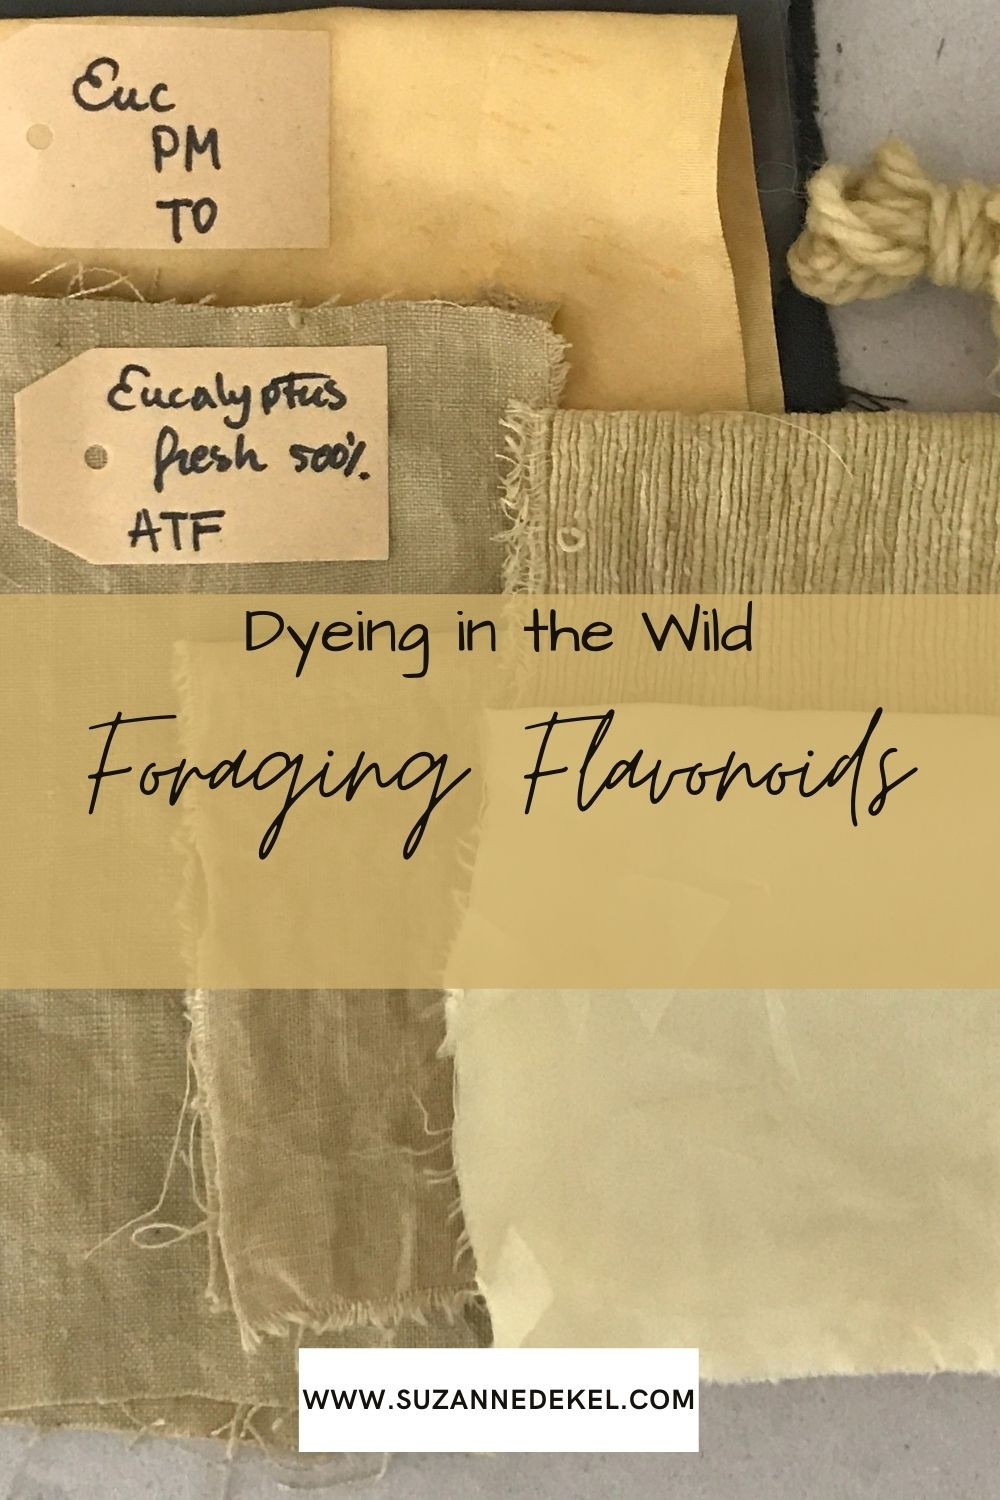 dyeing from the Wild